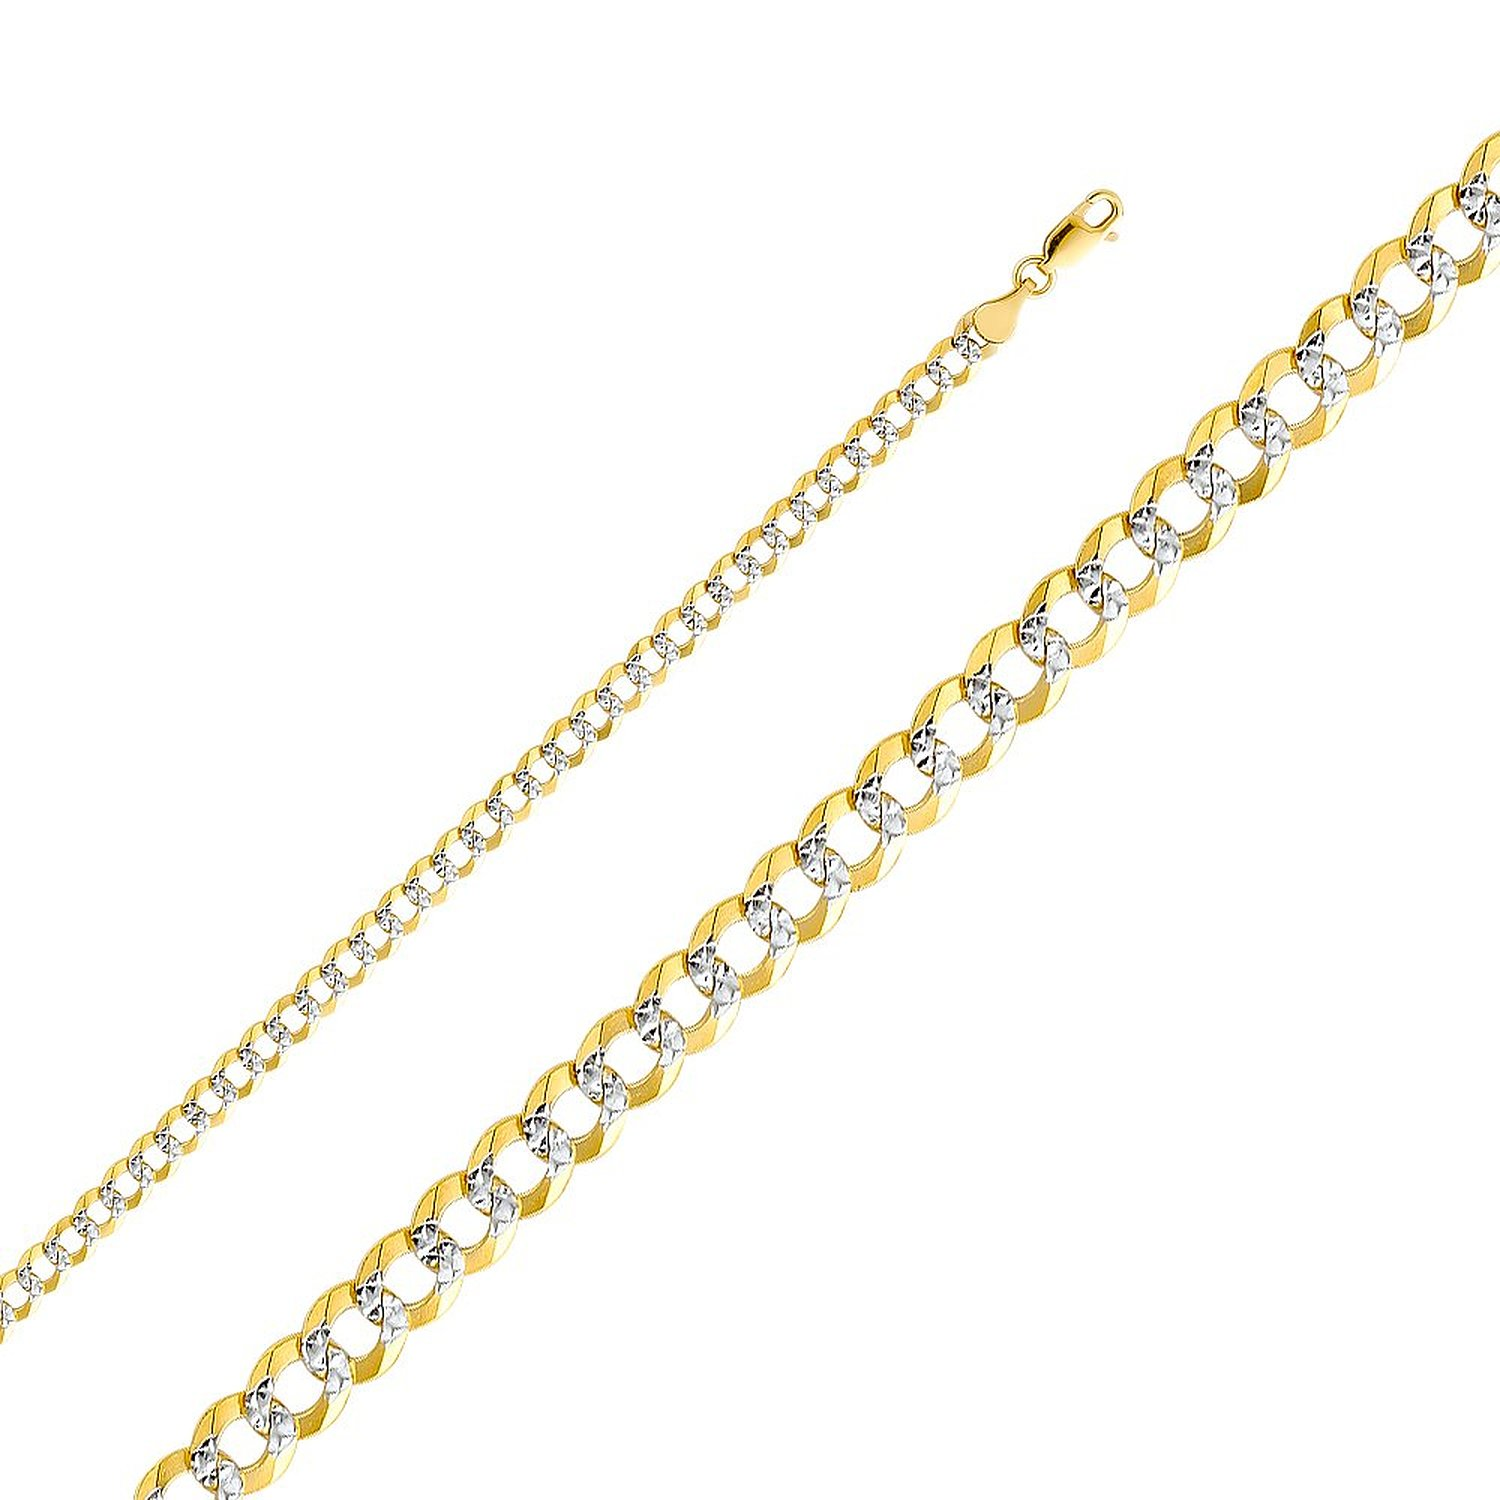 Wellingsale® 14k Two Tone Yellow and White Gold SOLID 4.7mm Polished Cuban Concaved Curb White Pave Diamond Cut Chain Necklace with Lobster Claw Clasp - 22"